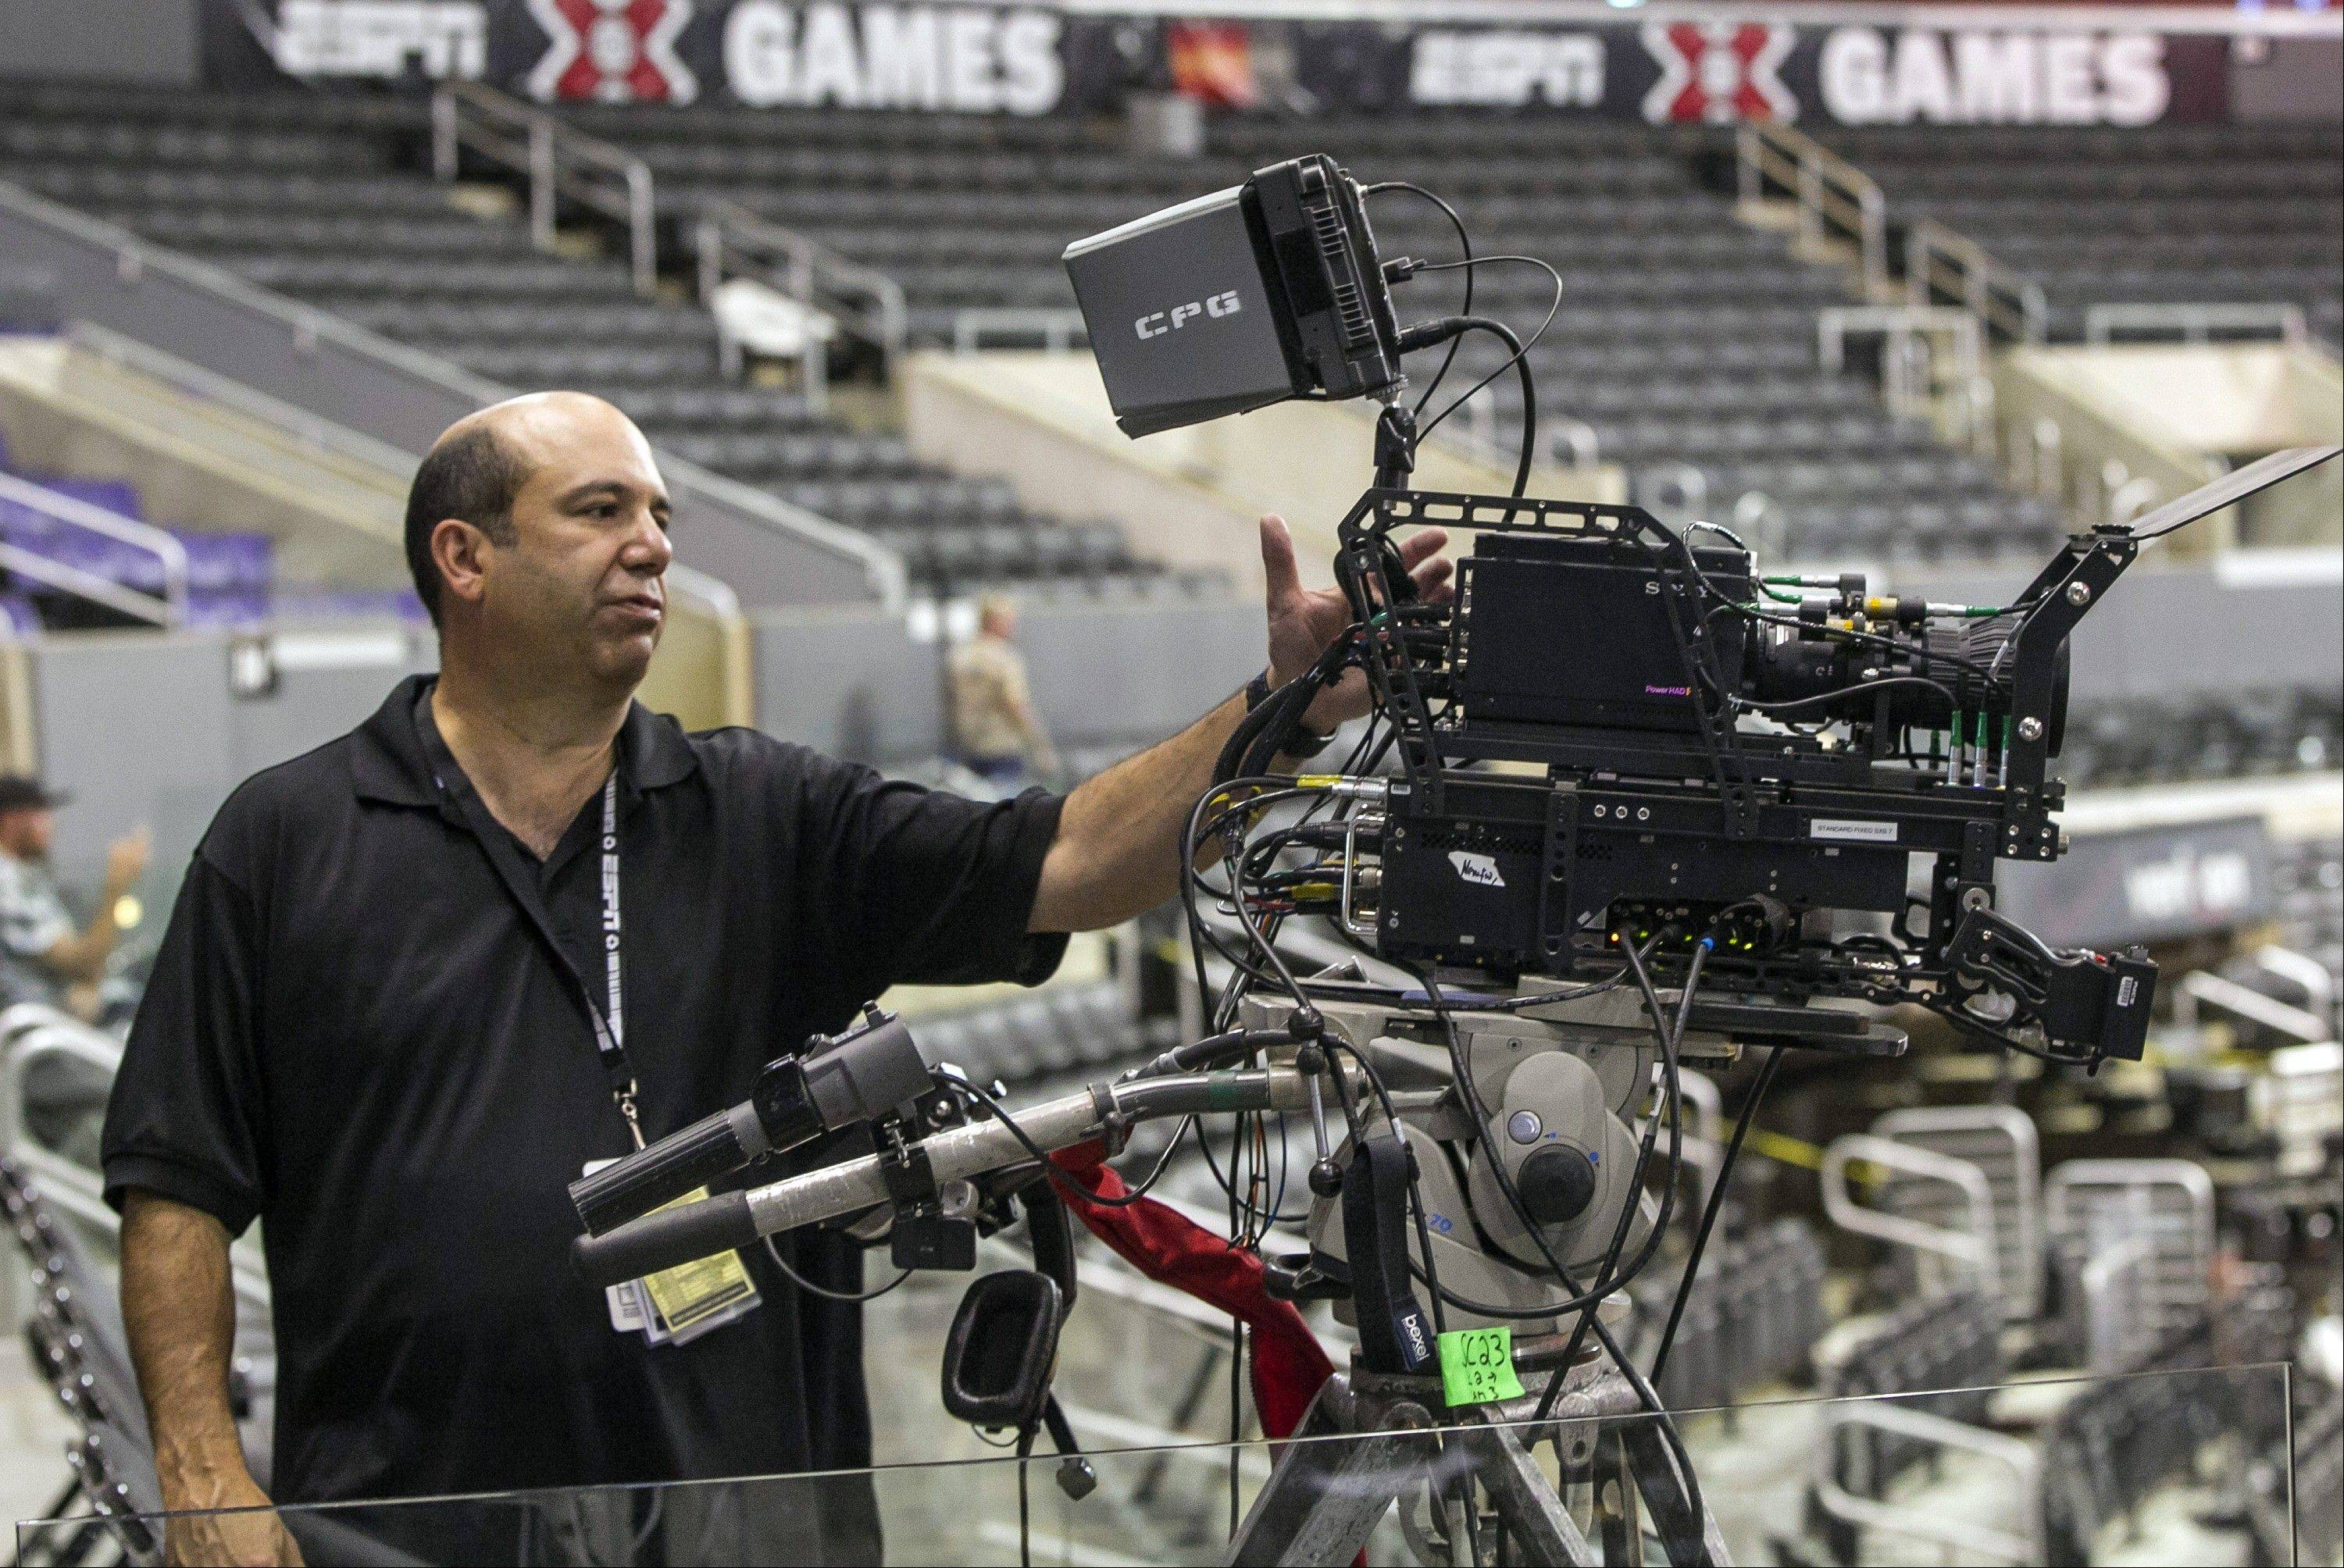 ESPN coordinating producer Phil Orlins shows a 3-D camera set up used by ESPN 3-D Network coverage at the ESPN X-Games held at the Staples Center in Los Angeles. Only 2 percent of TVs in American homes were able to show 3-D last year, according to IHS Screen Digest. That's about 6.9 million sets out of 331 million installed.